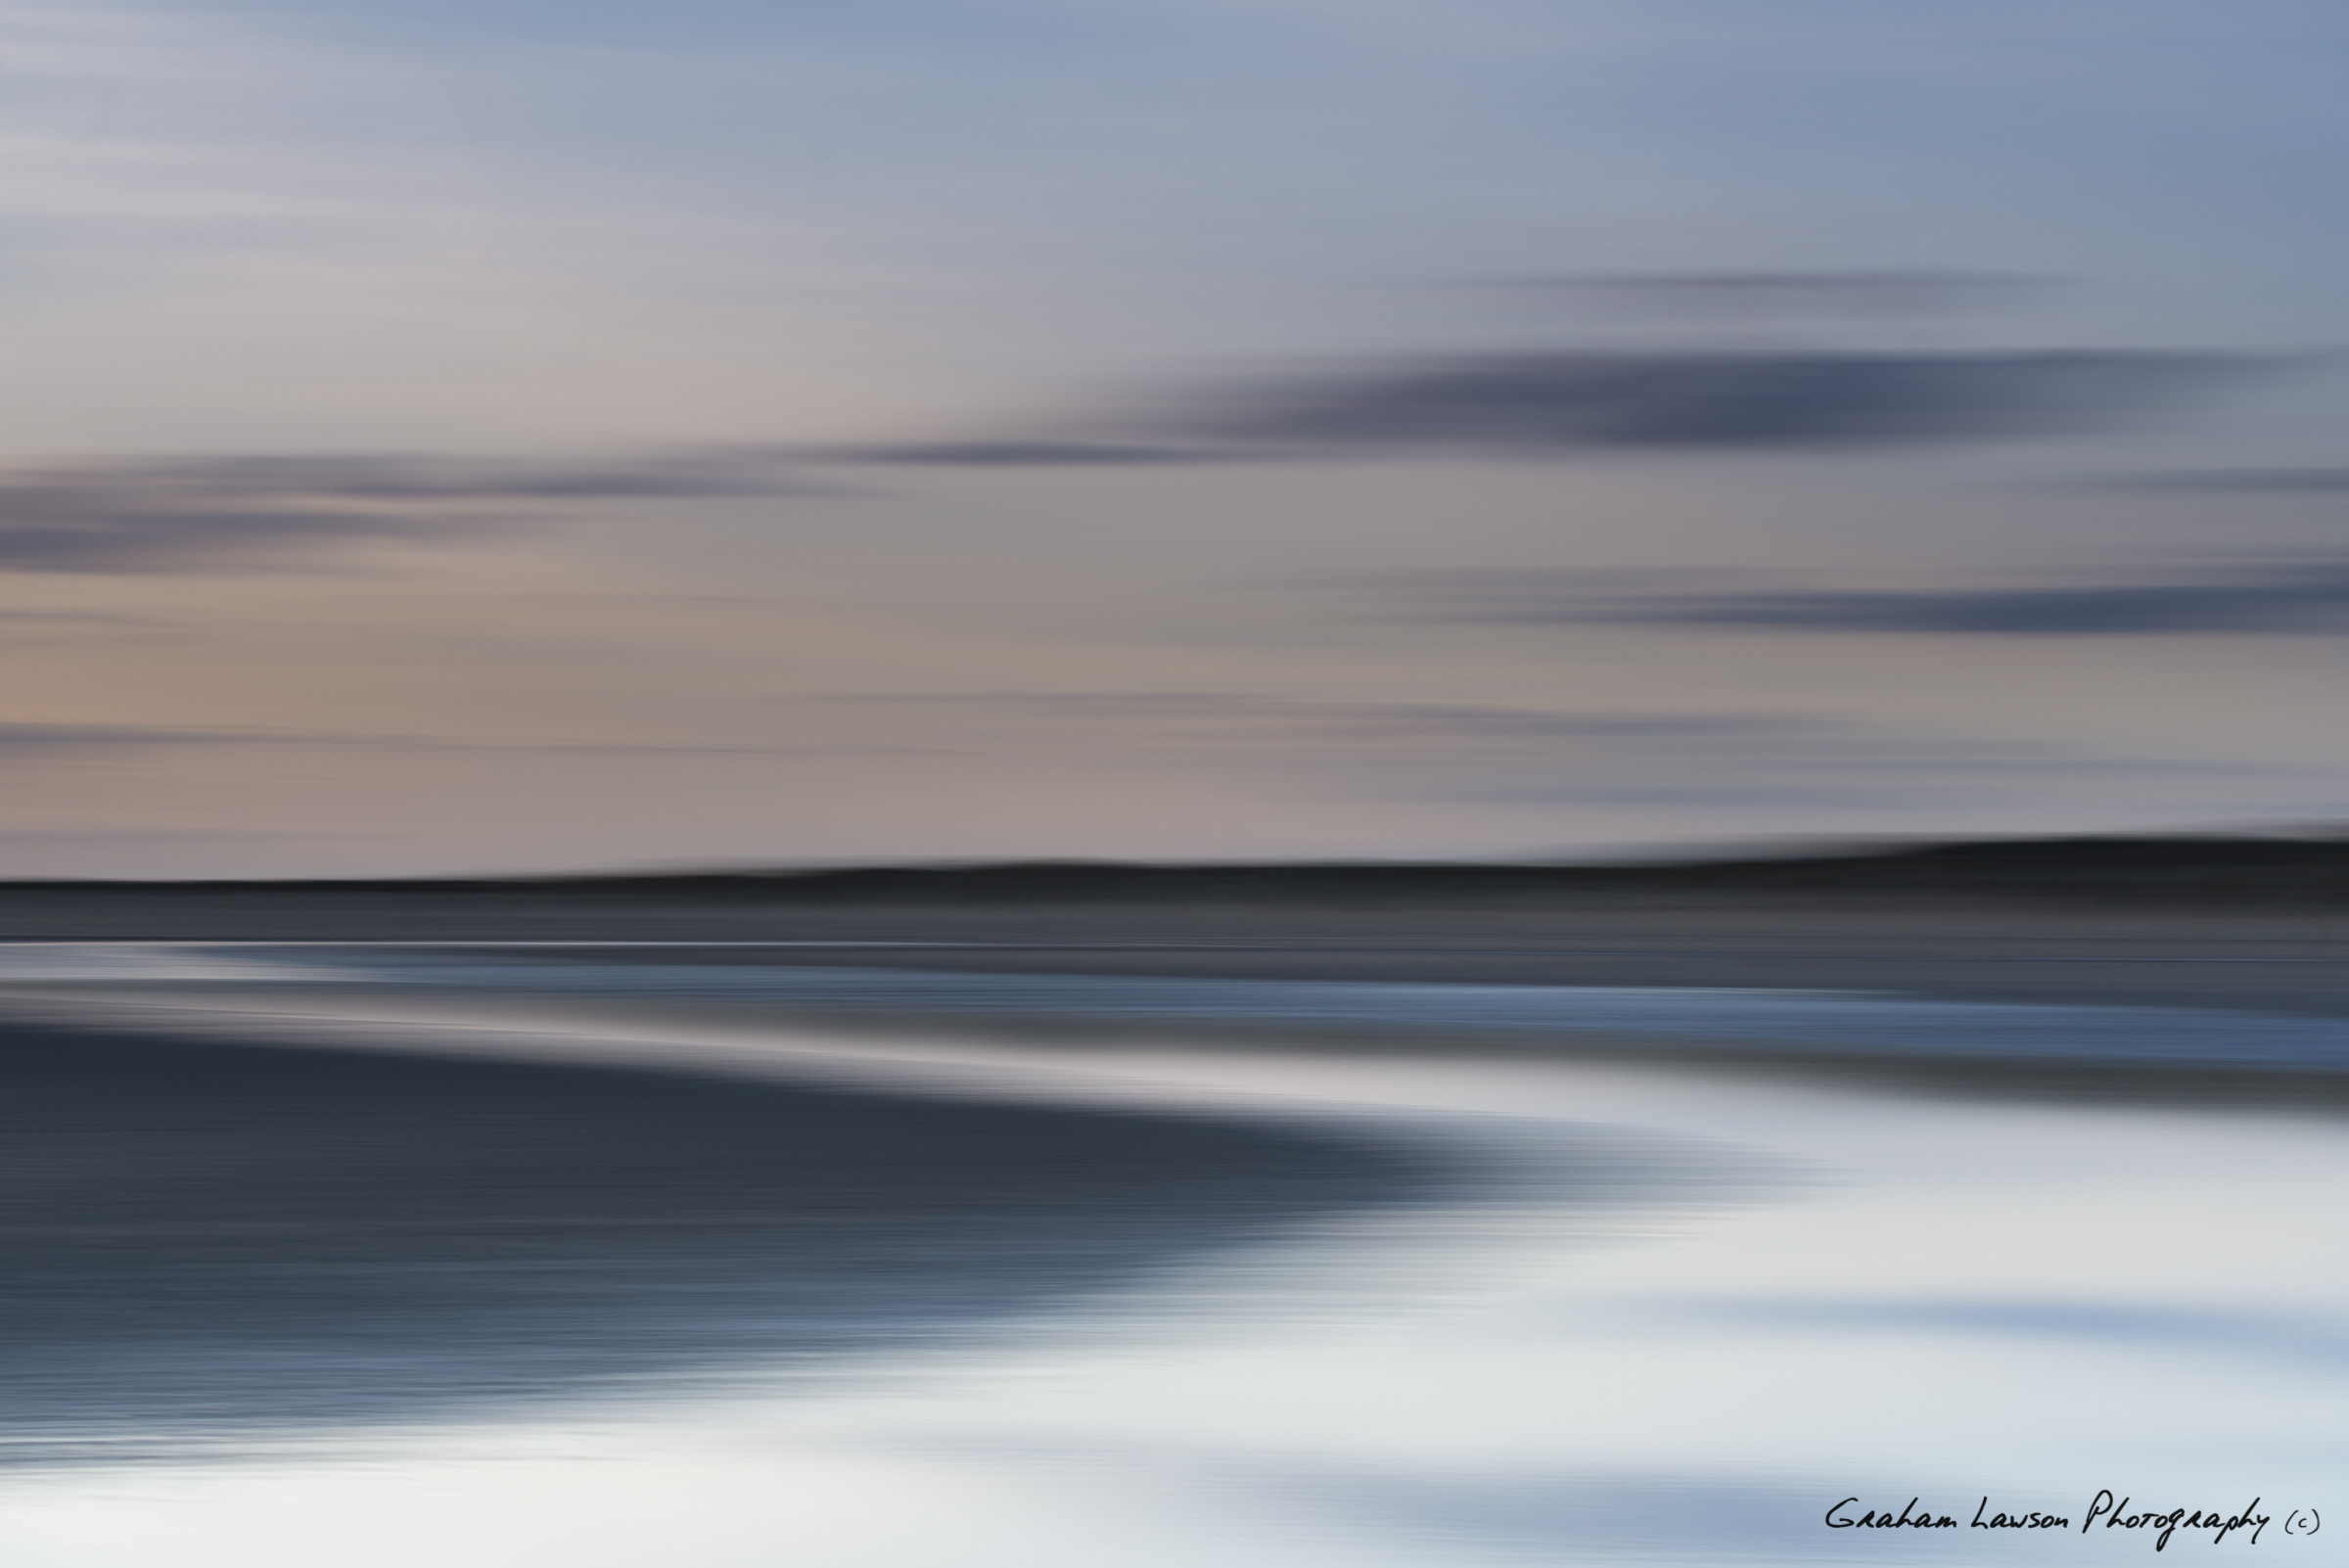 Cambers Sands IV